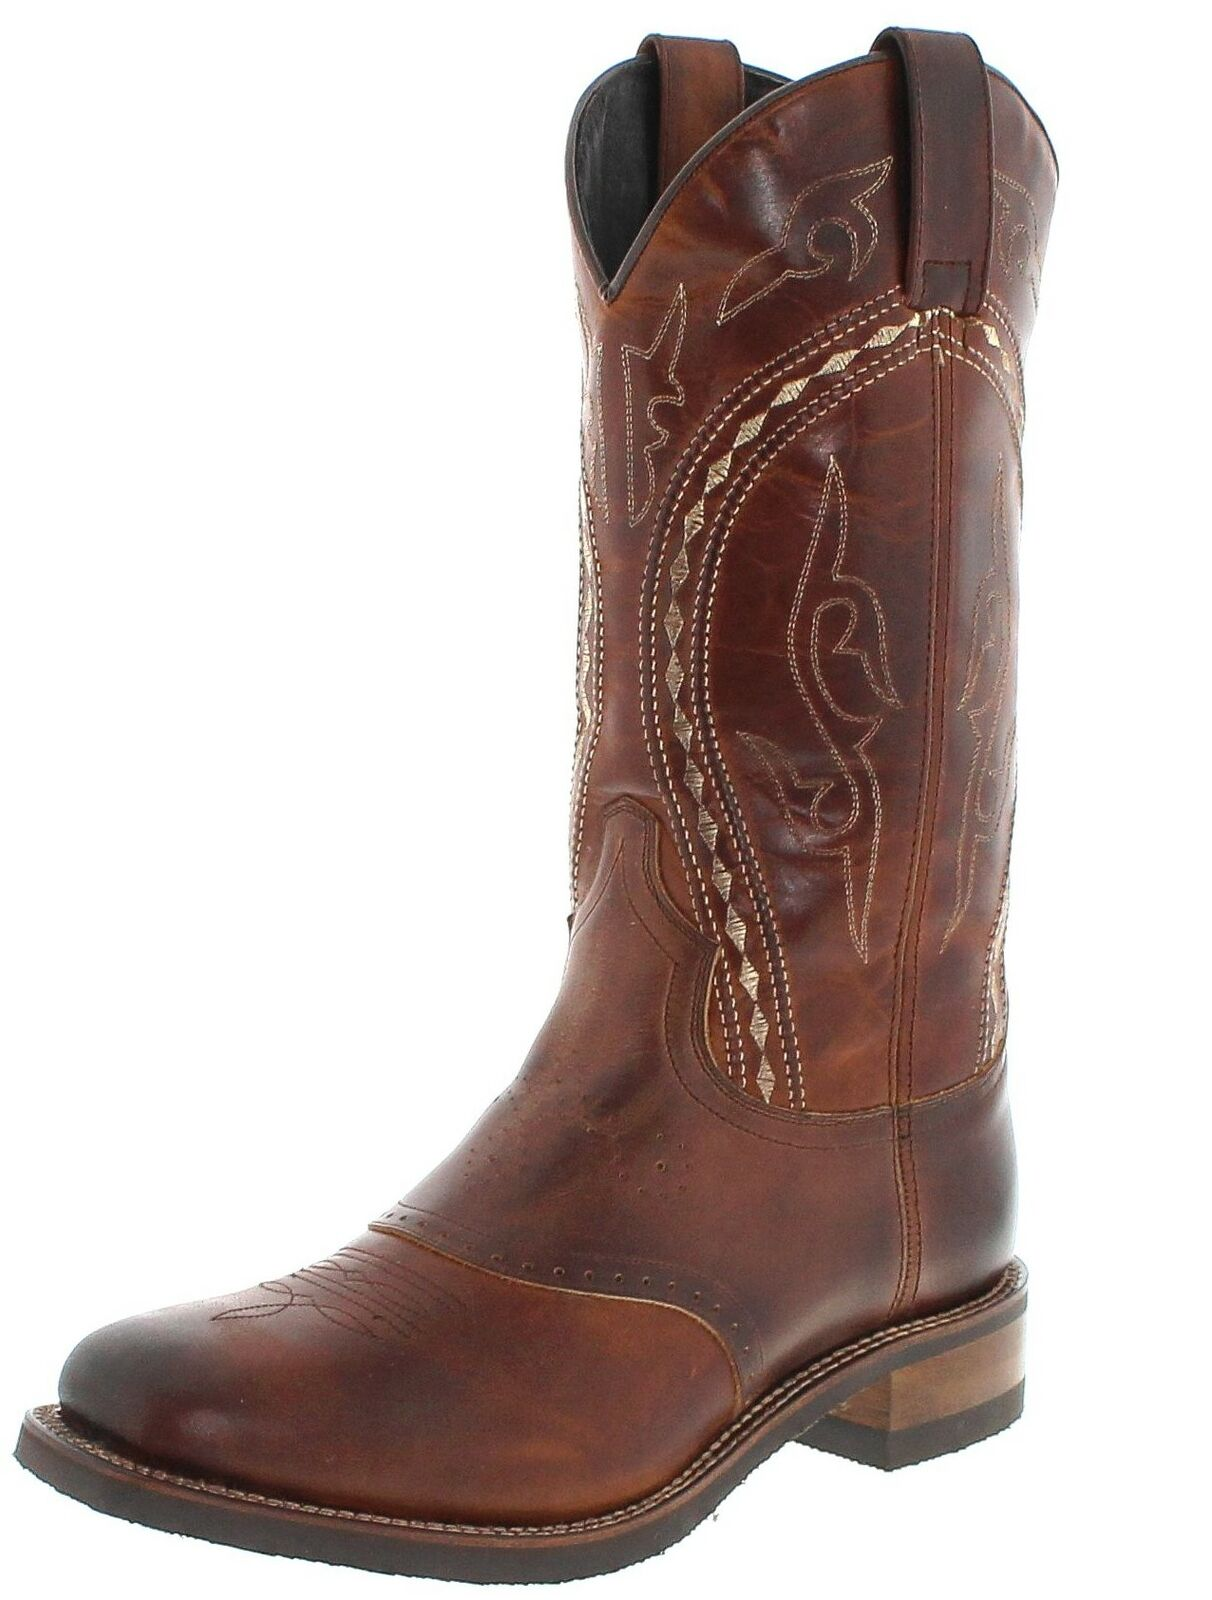 Sendra Stiefel Desna braun Western Riding Stiefel with Thinsulate Insulation Isolation